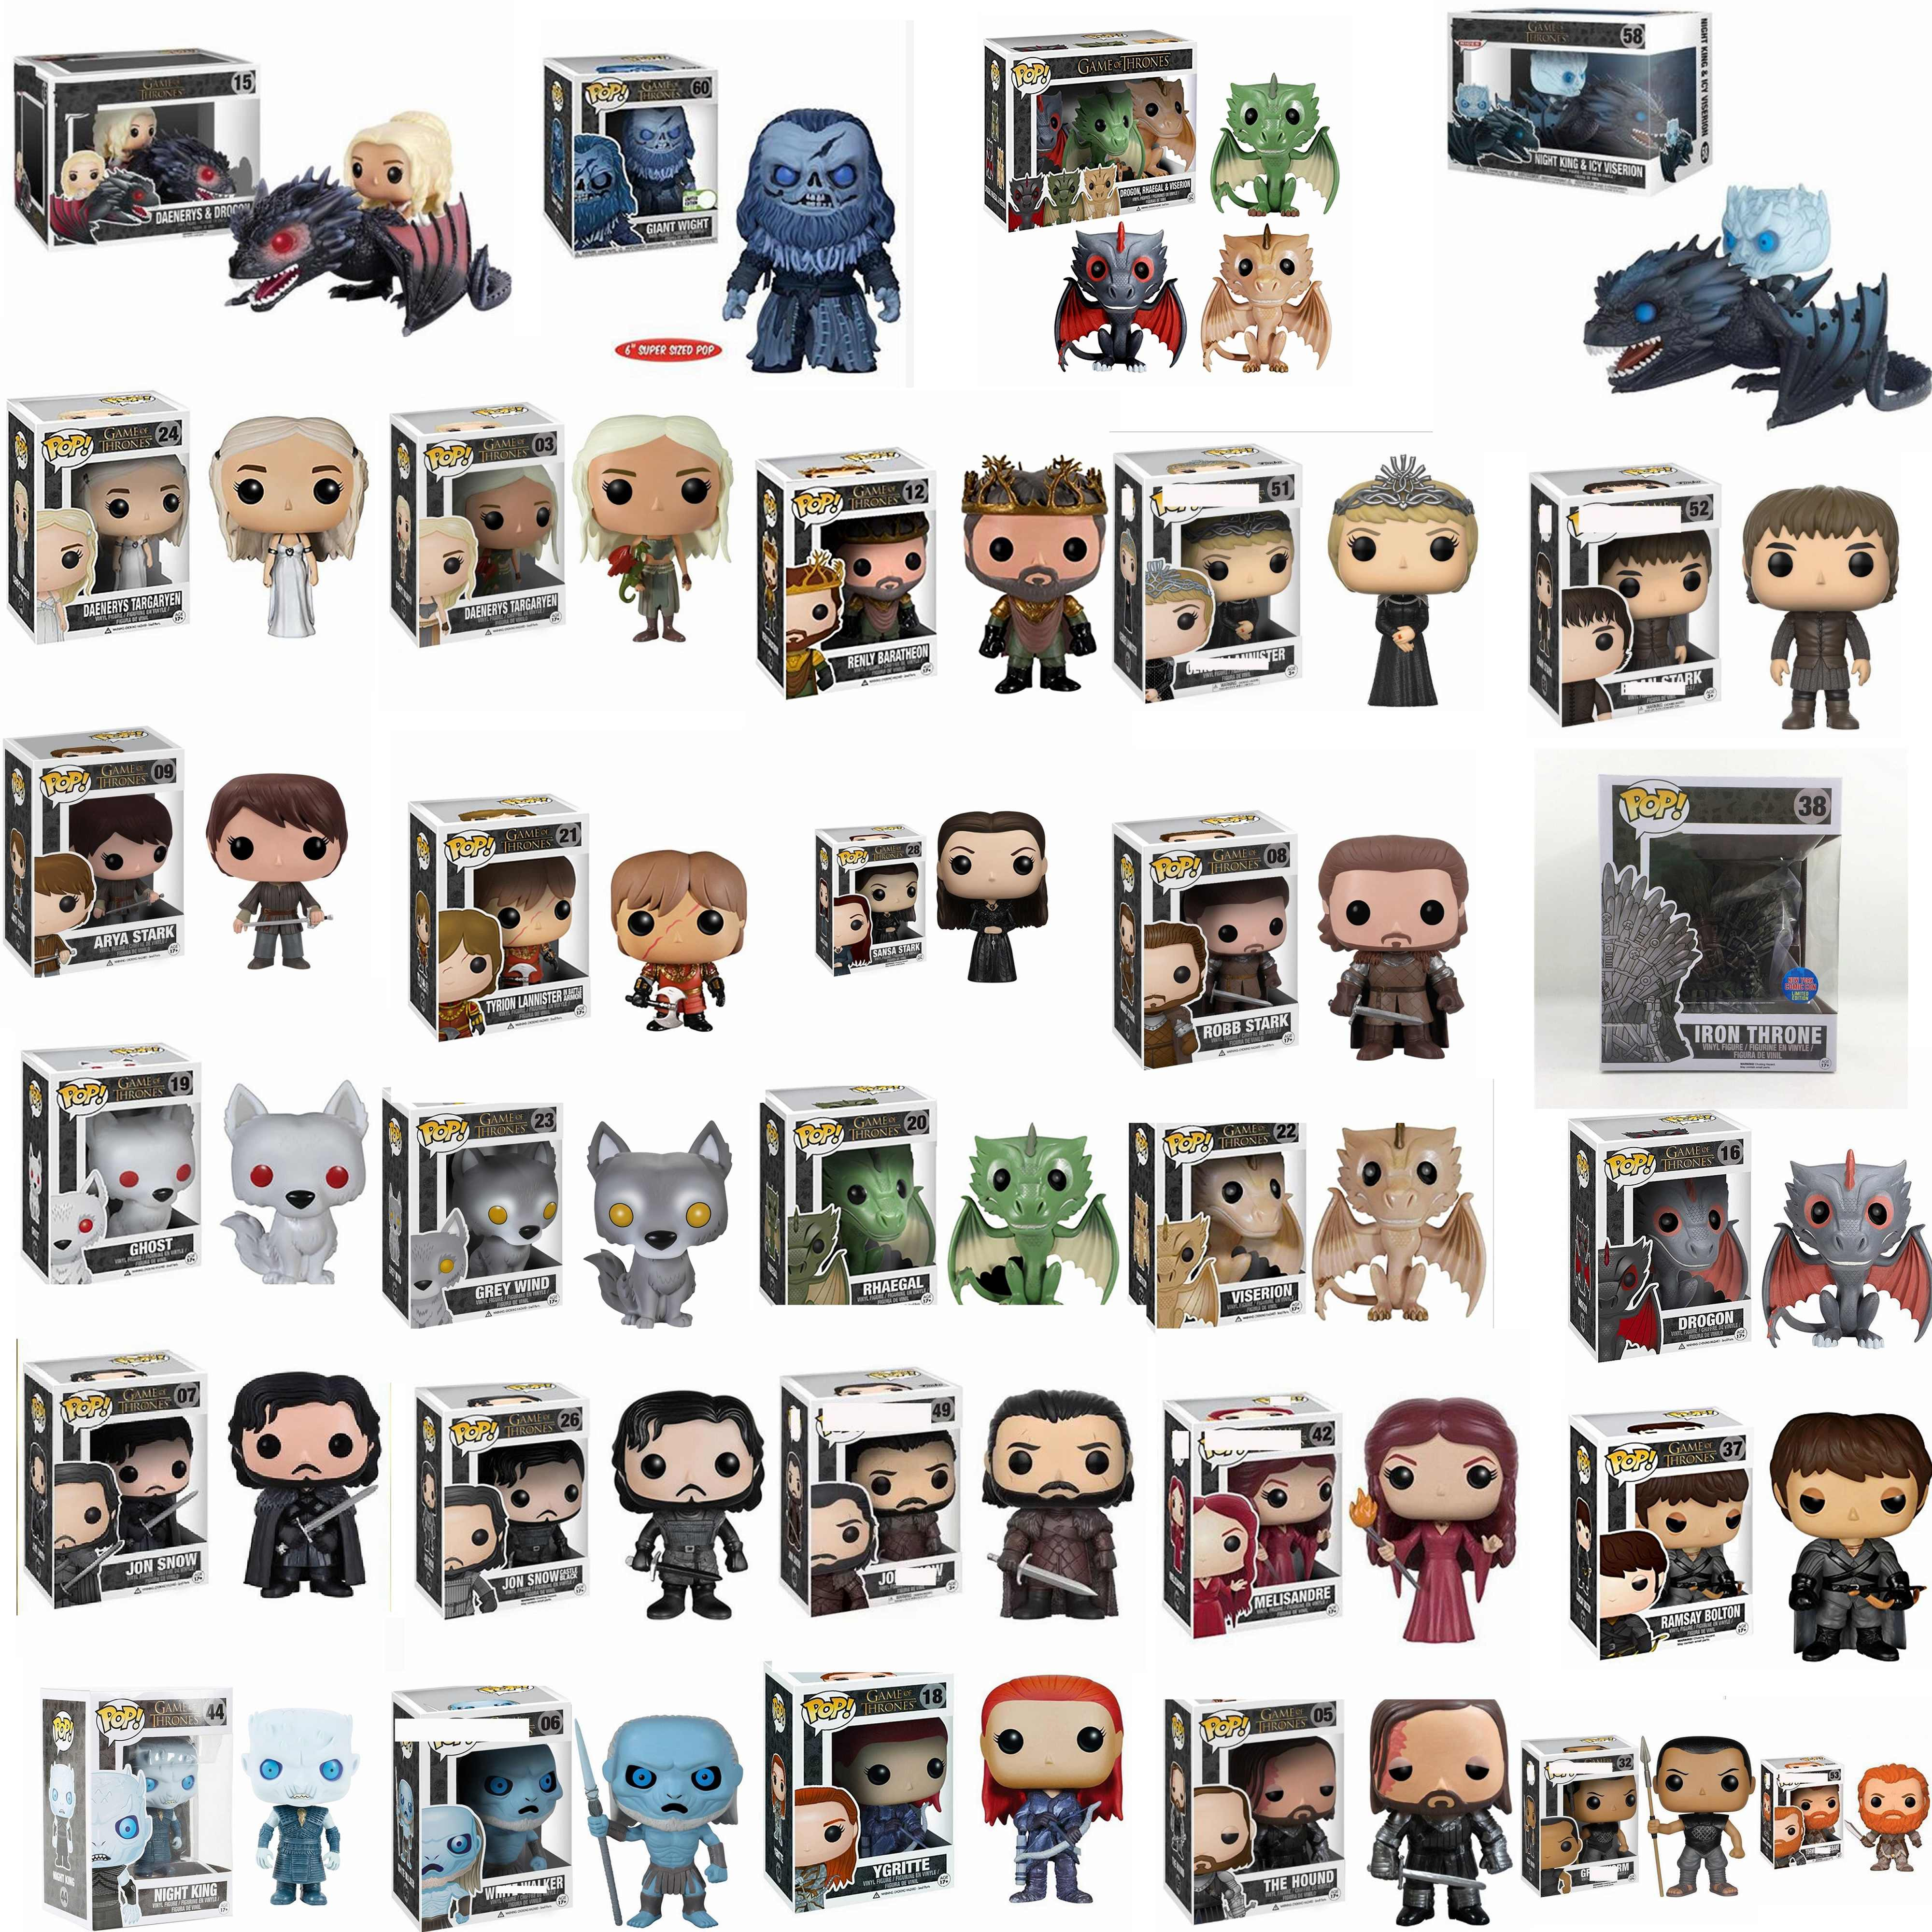 Funko pop Song Of Ice And Fire Game Of Thrones & บัลลังก์เหล็ก 38 # brinquedos Action Figure ของเล่นสำหรับเด็กของขวัญกล่อง